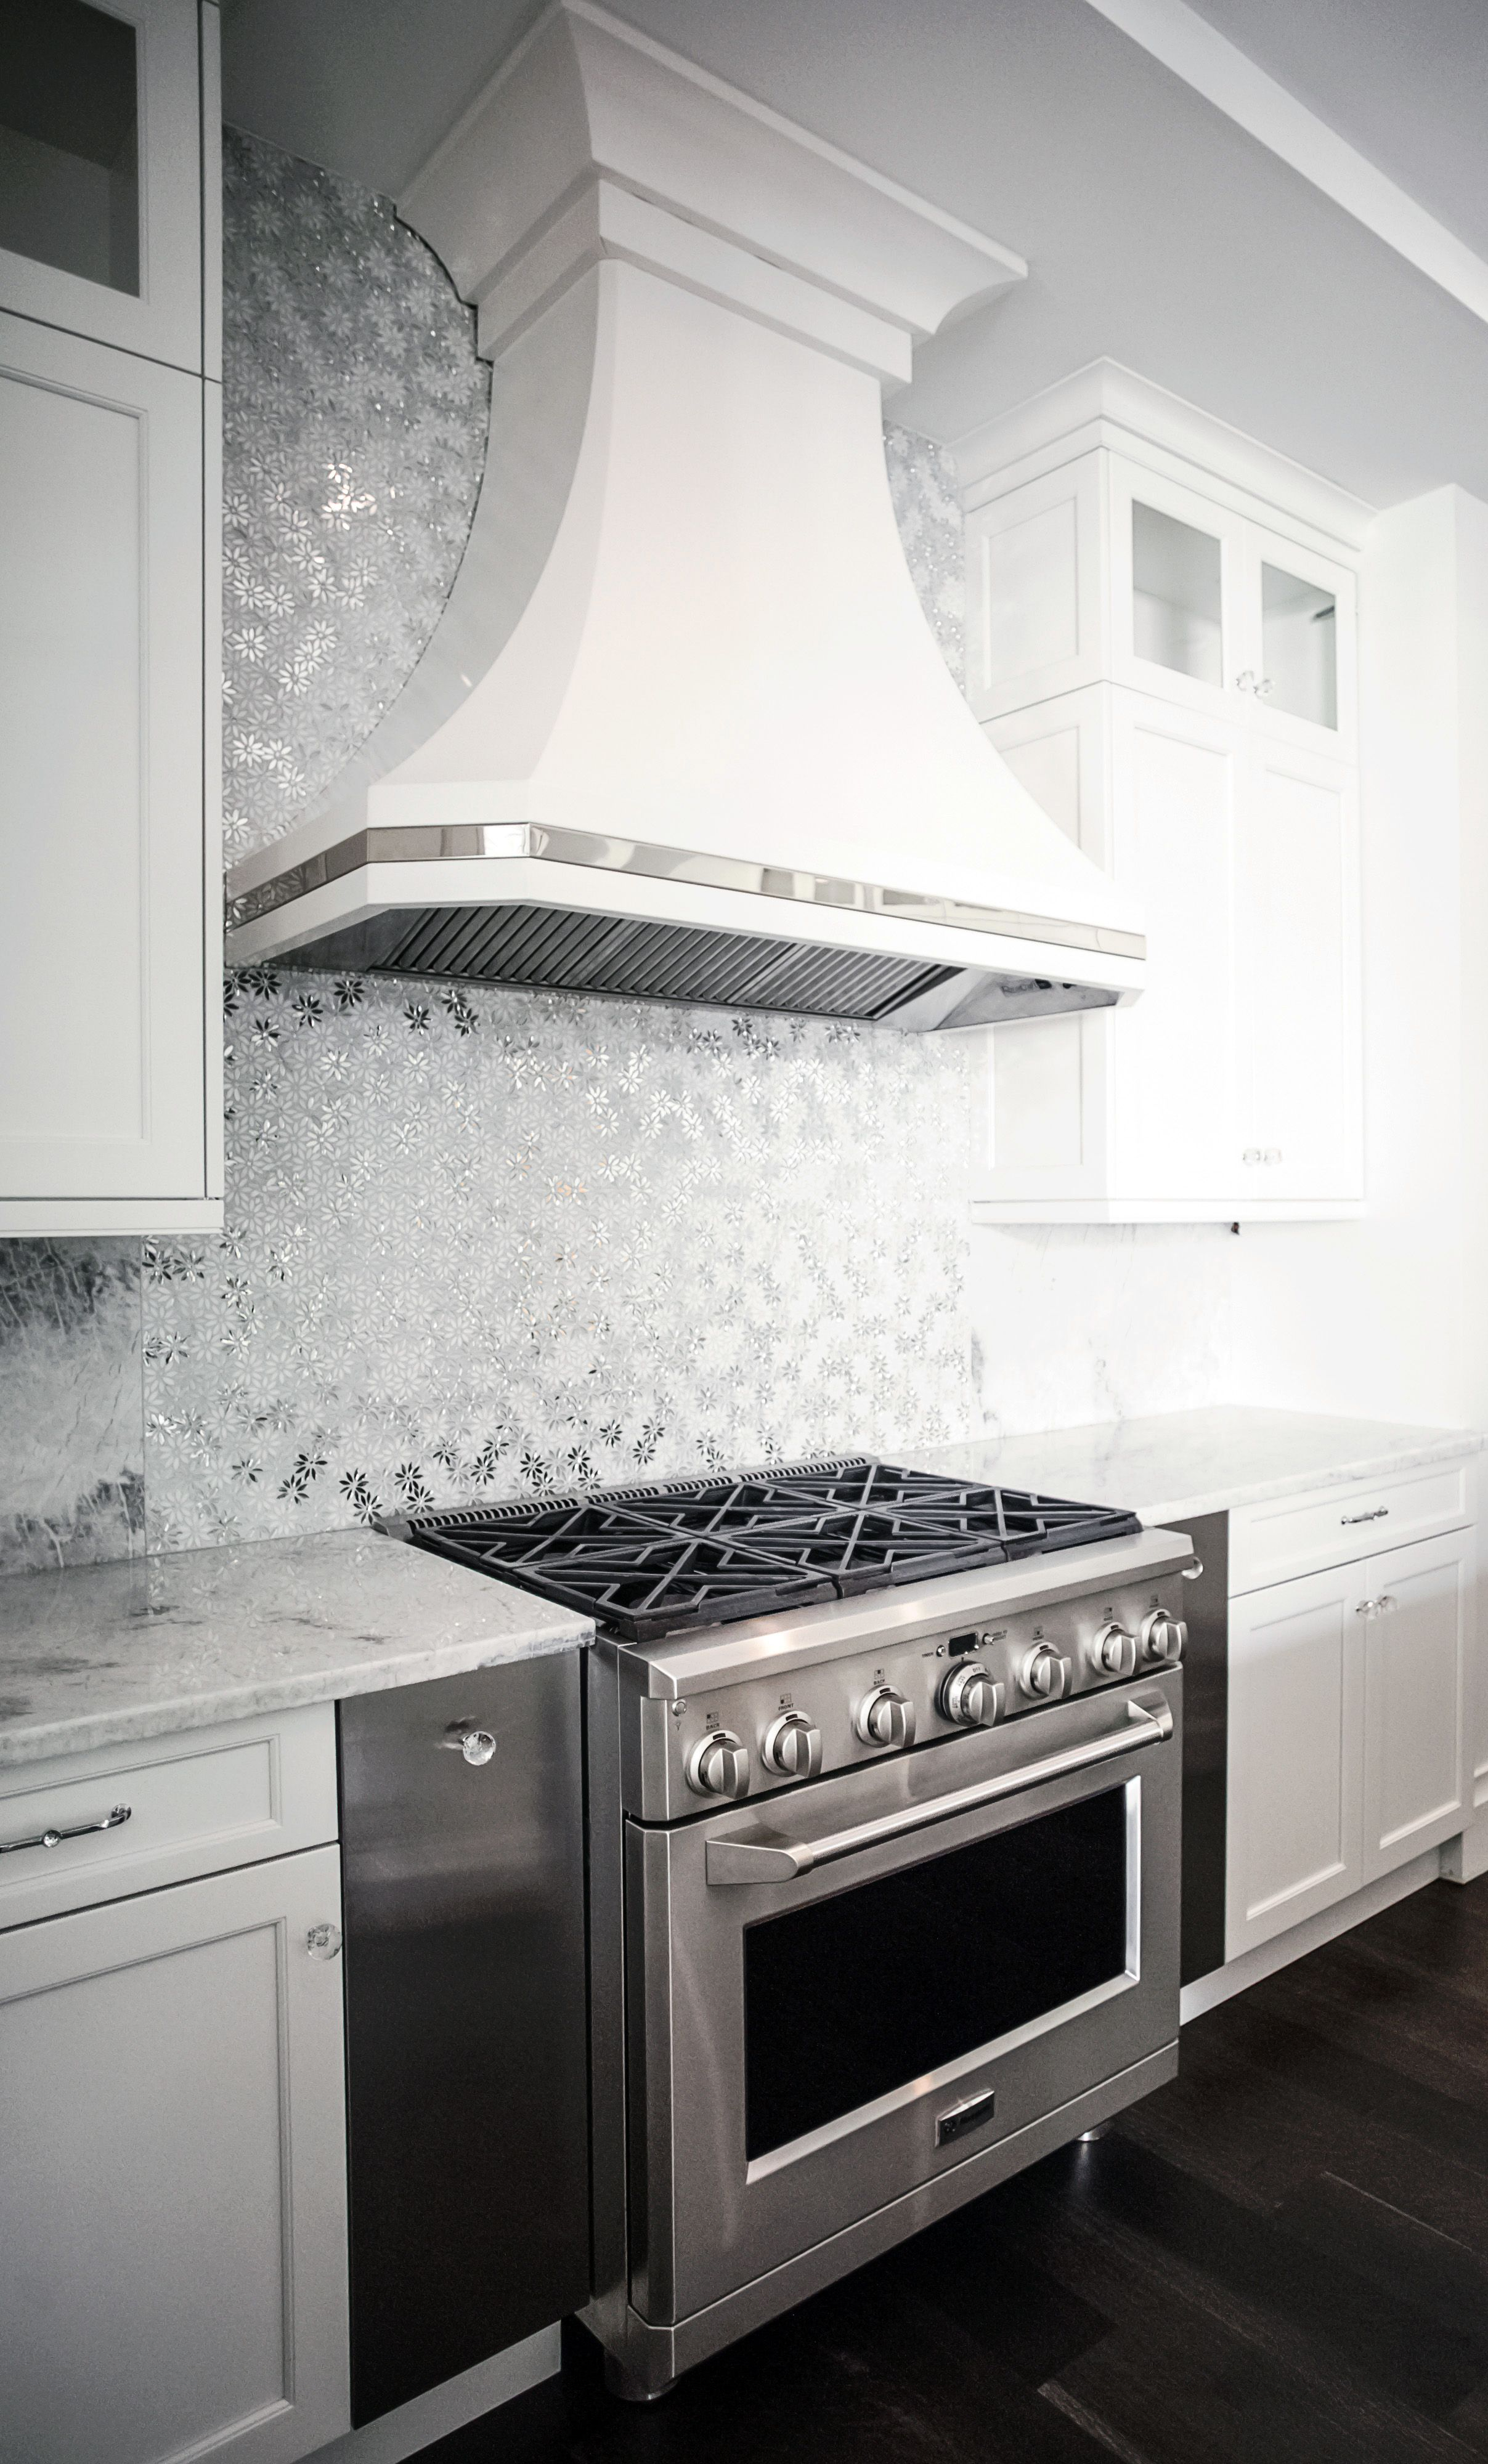 Artistic tile i dapper daisy mosaic in whitesilver illuminates this artistic tile i dapper daisy mosaic in whitesilver illuminates this backsplash with a floral dailygadgetfo Images